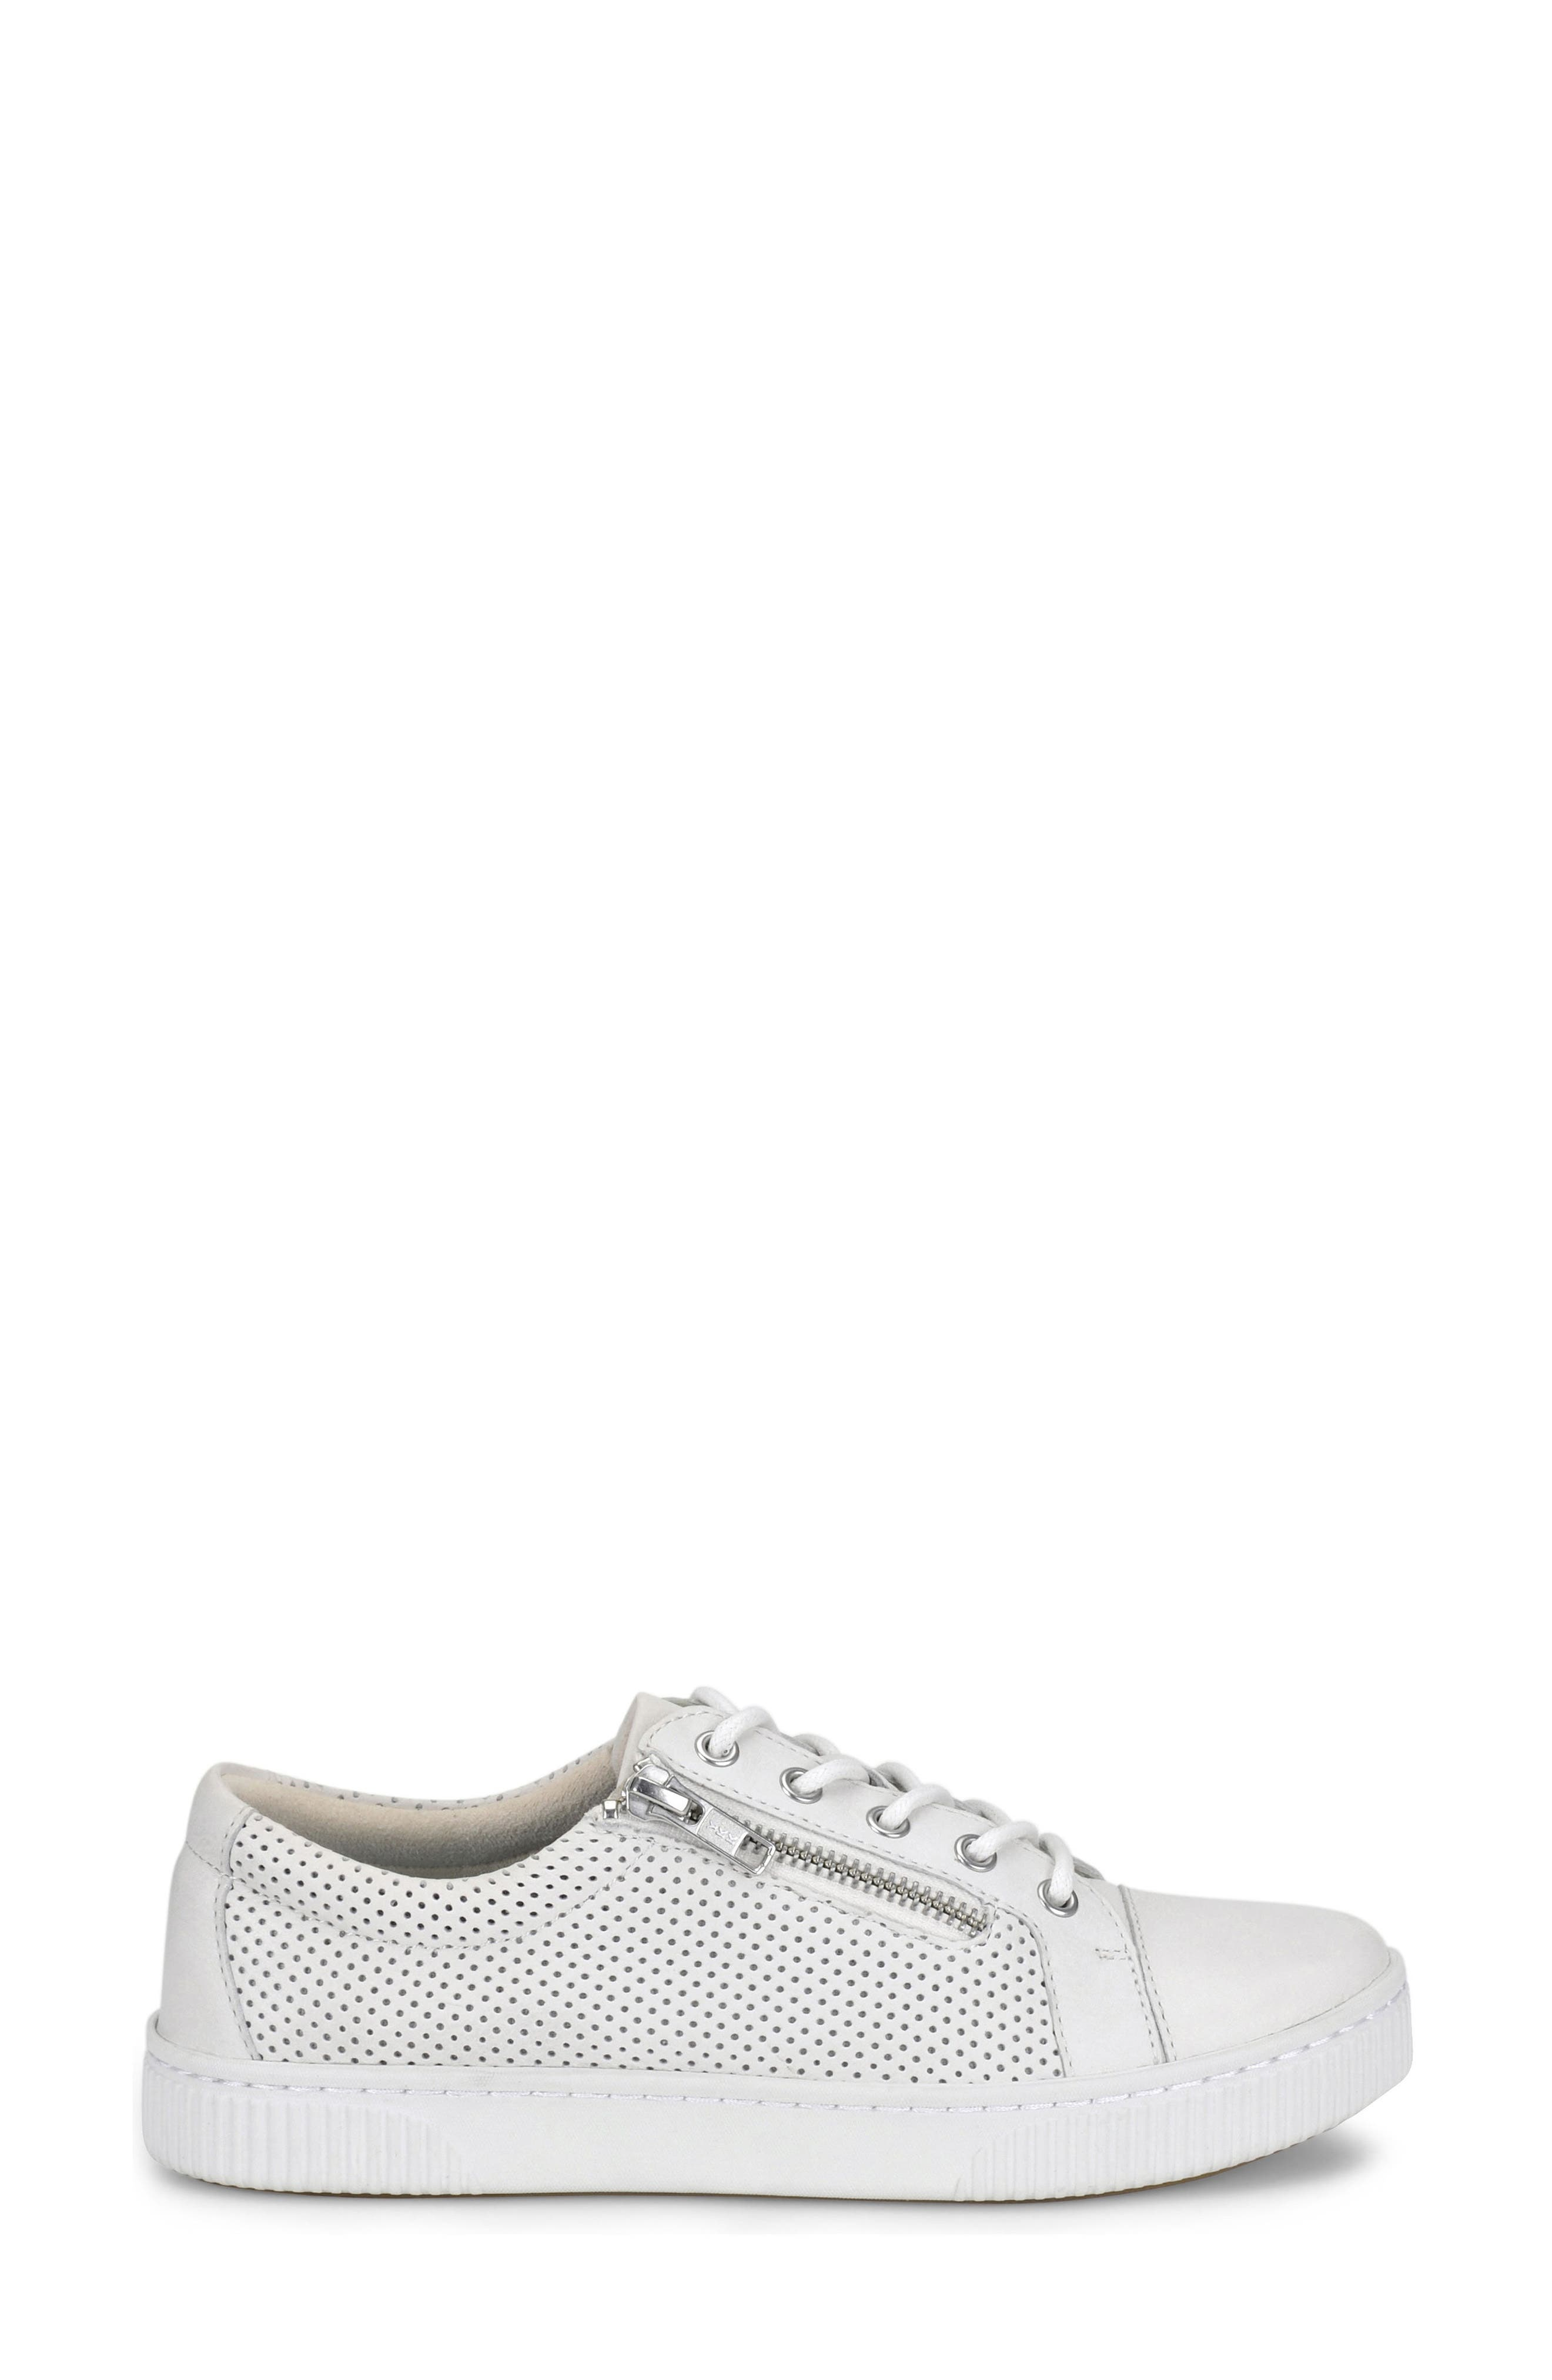 Tamara Perforated Sneaker,                             Alternate thumbnail 3, color,                             White Leather